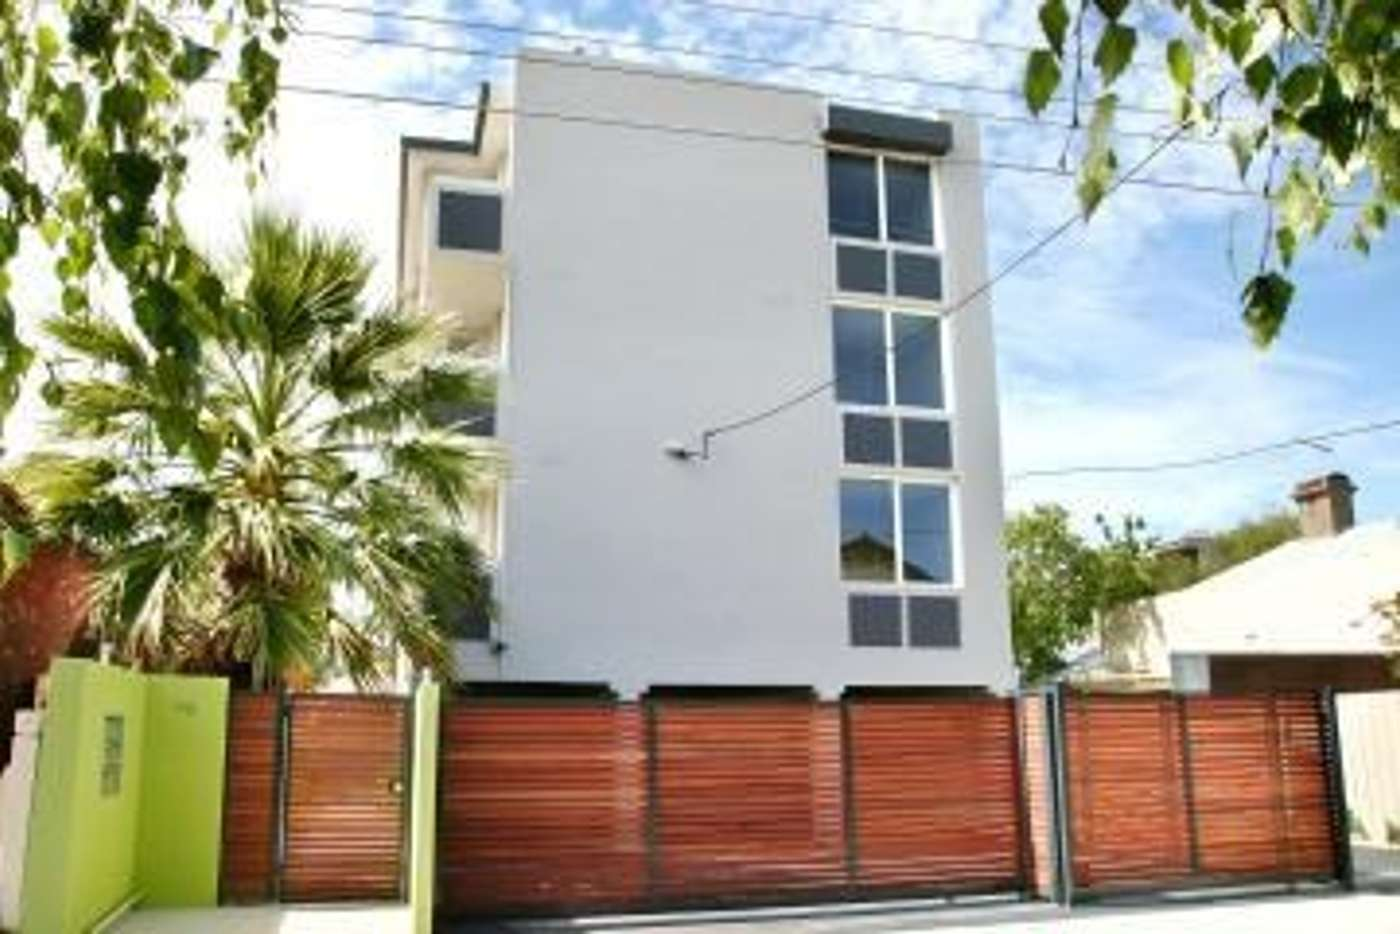 Main view of Homely unit listing, 2/45 Albion Street, South Yarra VIC 3141